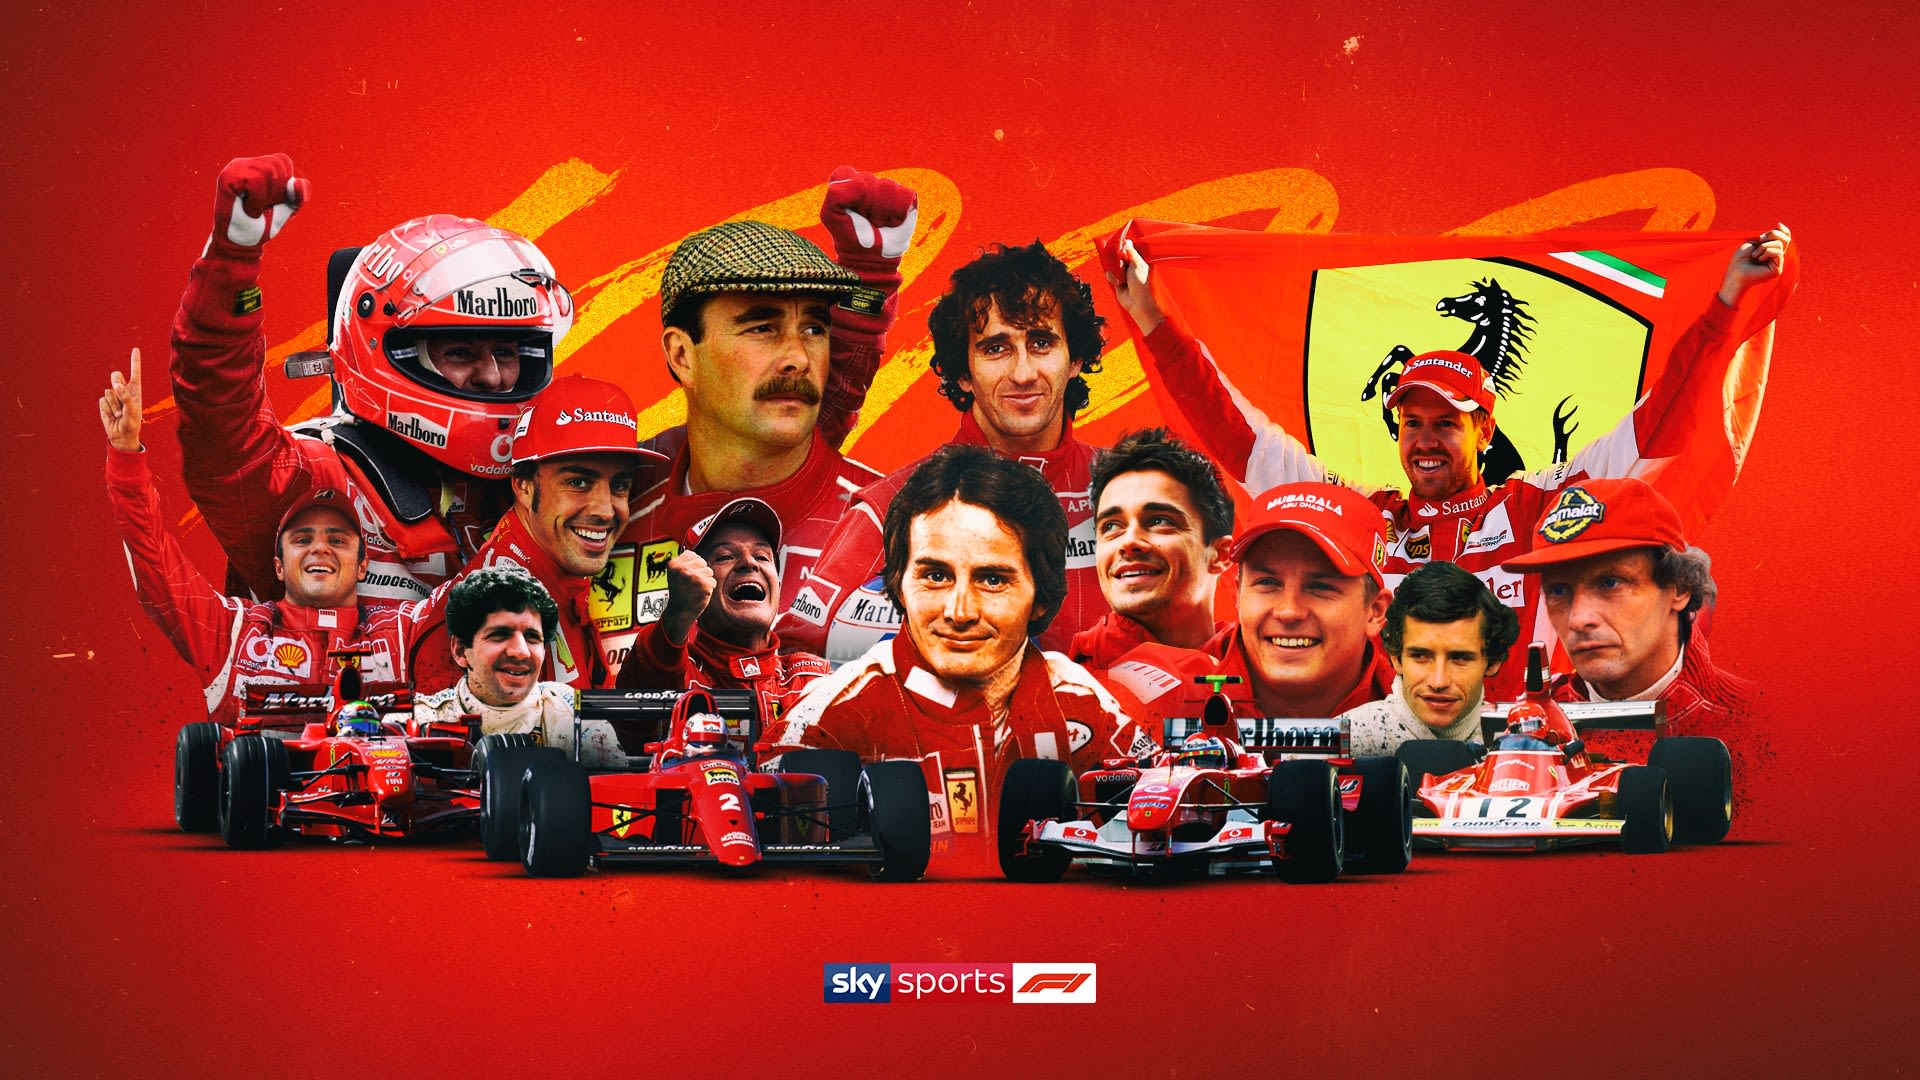 Ferrari 1st To 1000 Mystique Of F1 S Giant Explained Before Tuscan Gp Formula 1 News Sky Sports